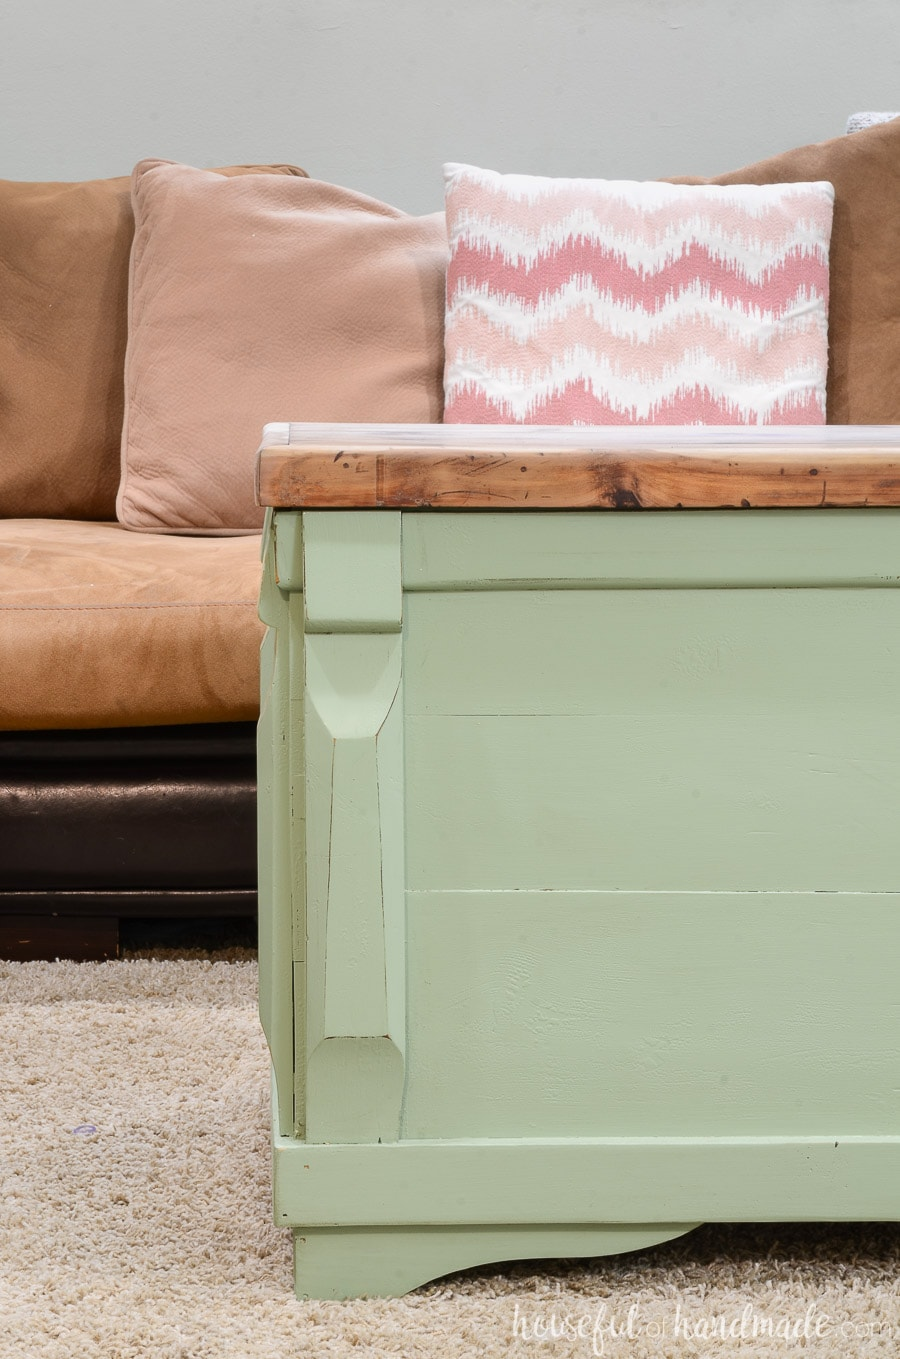 Close up of the refinished blanket chest being used as a coffee table. The base of the chest is painted green with slight distressing and the top is left wood toned.